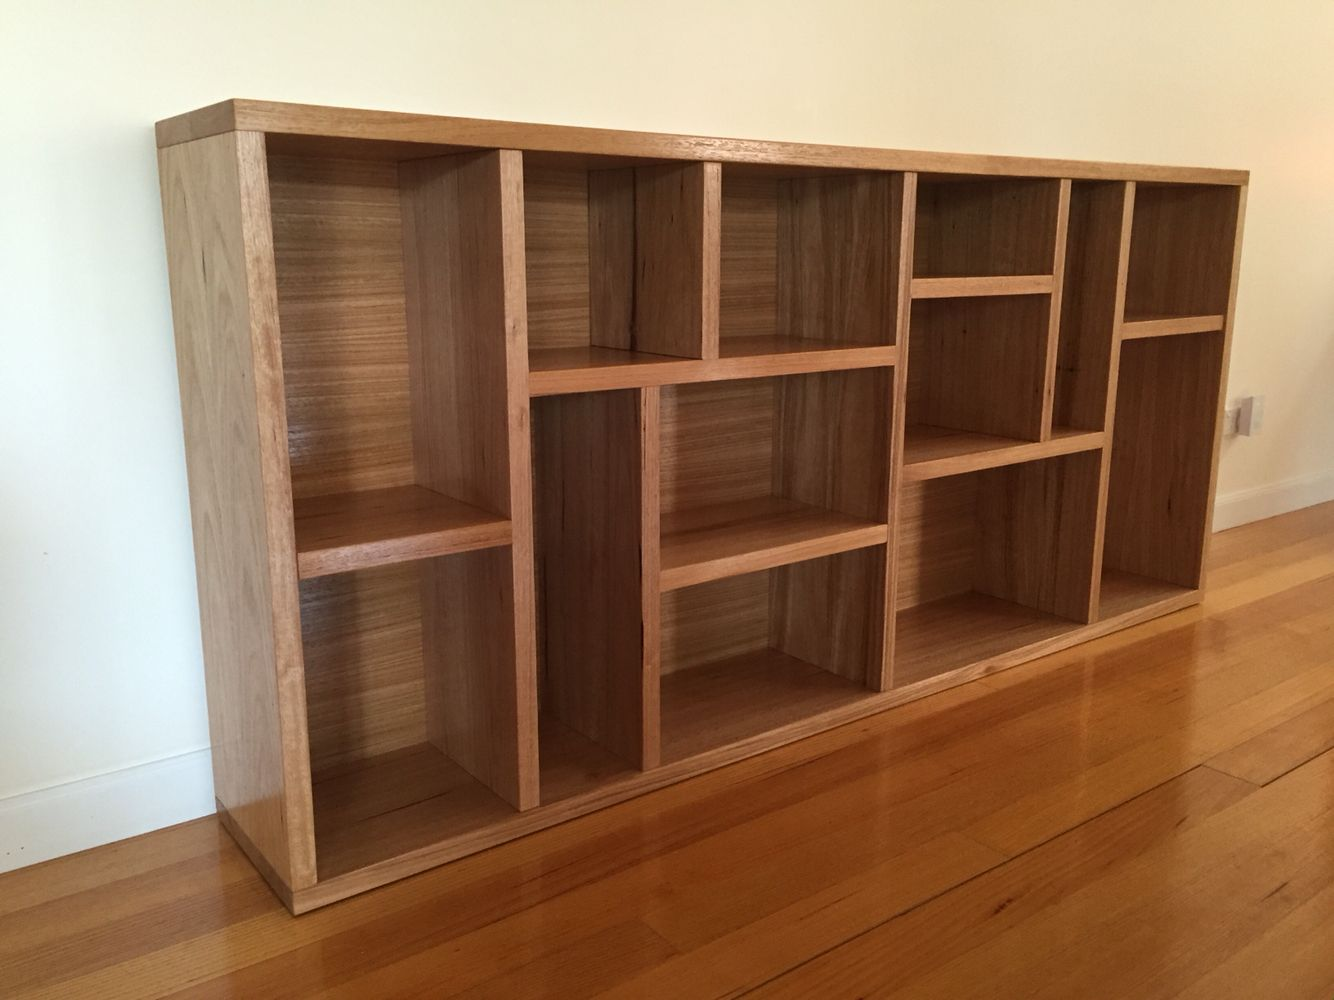 Custom Made Bookshelf Using Wormy Chestnut Timber